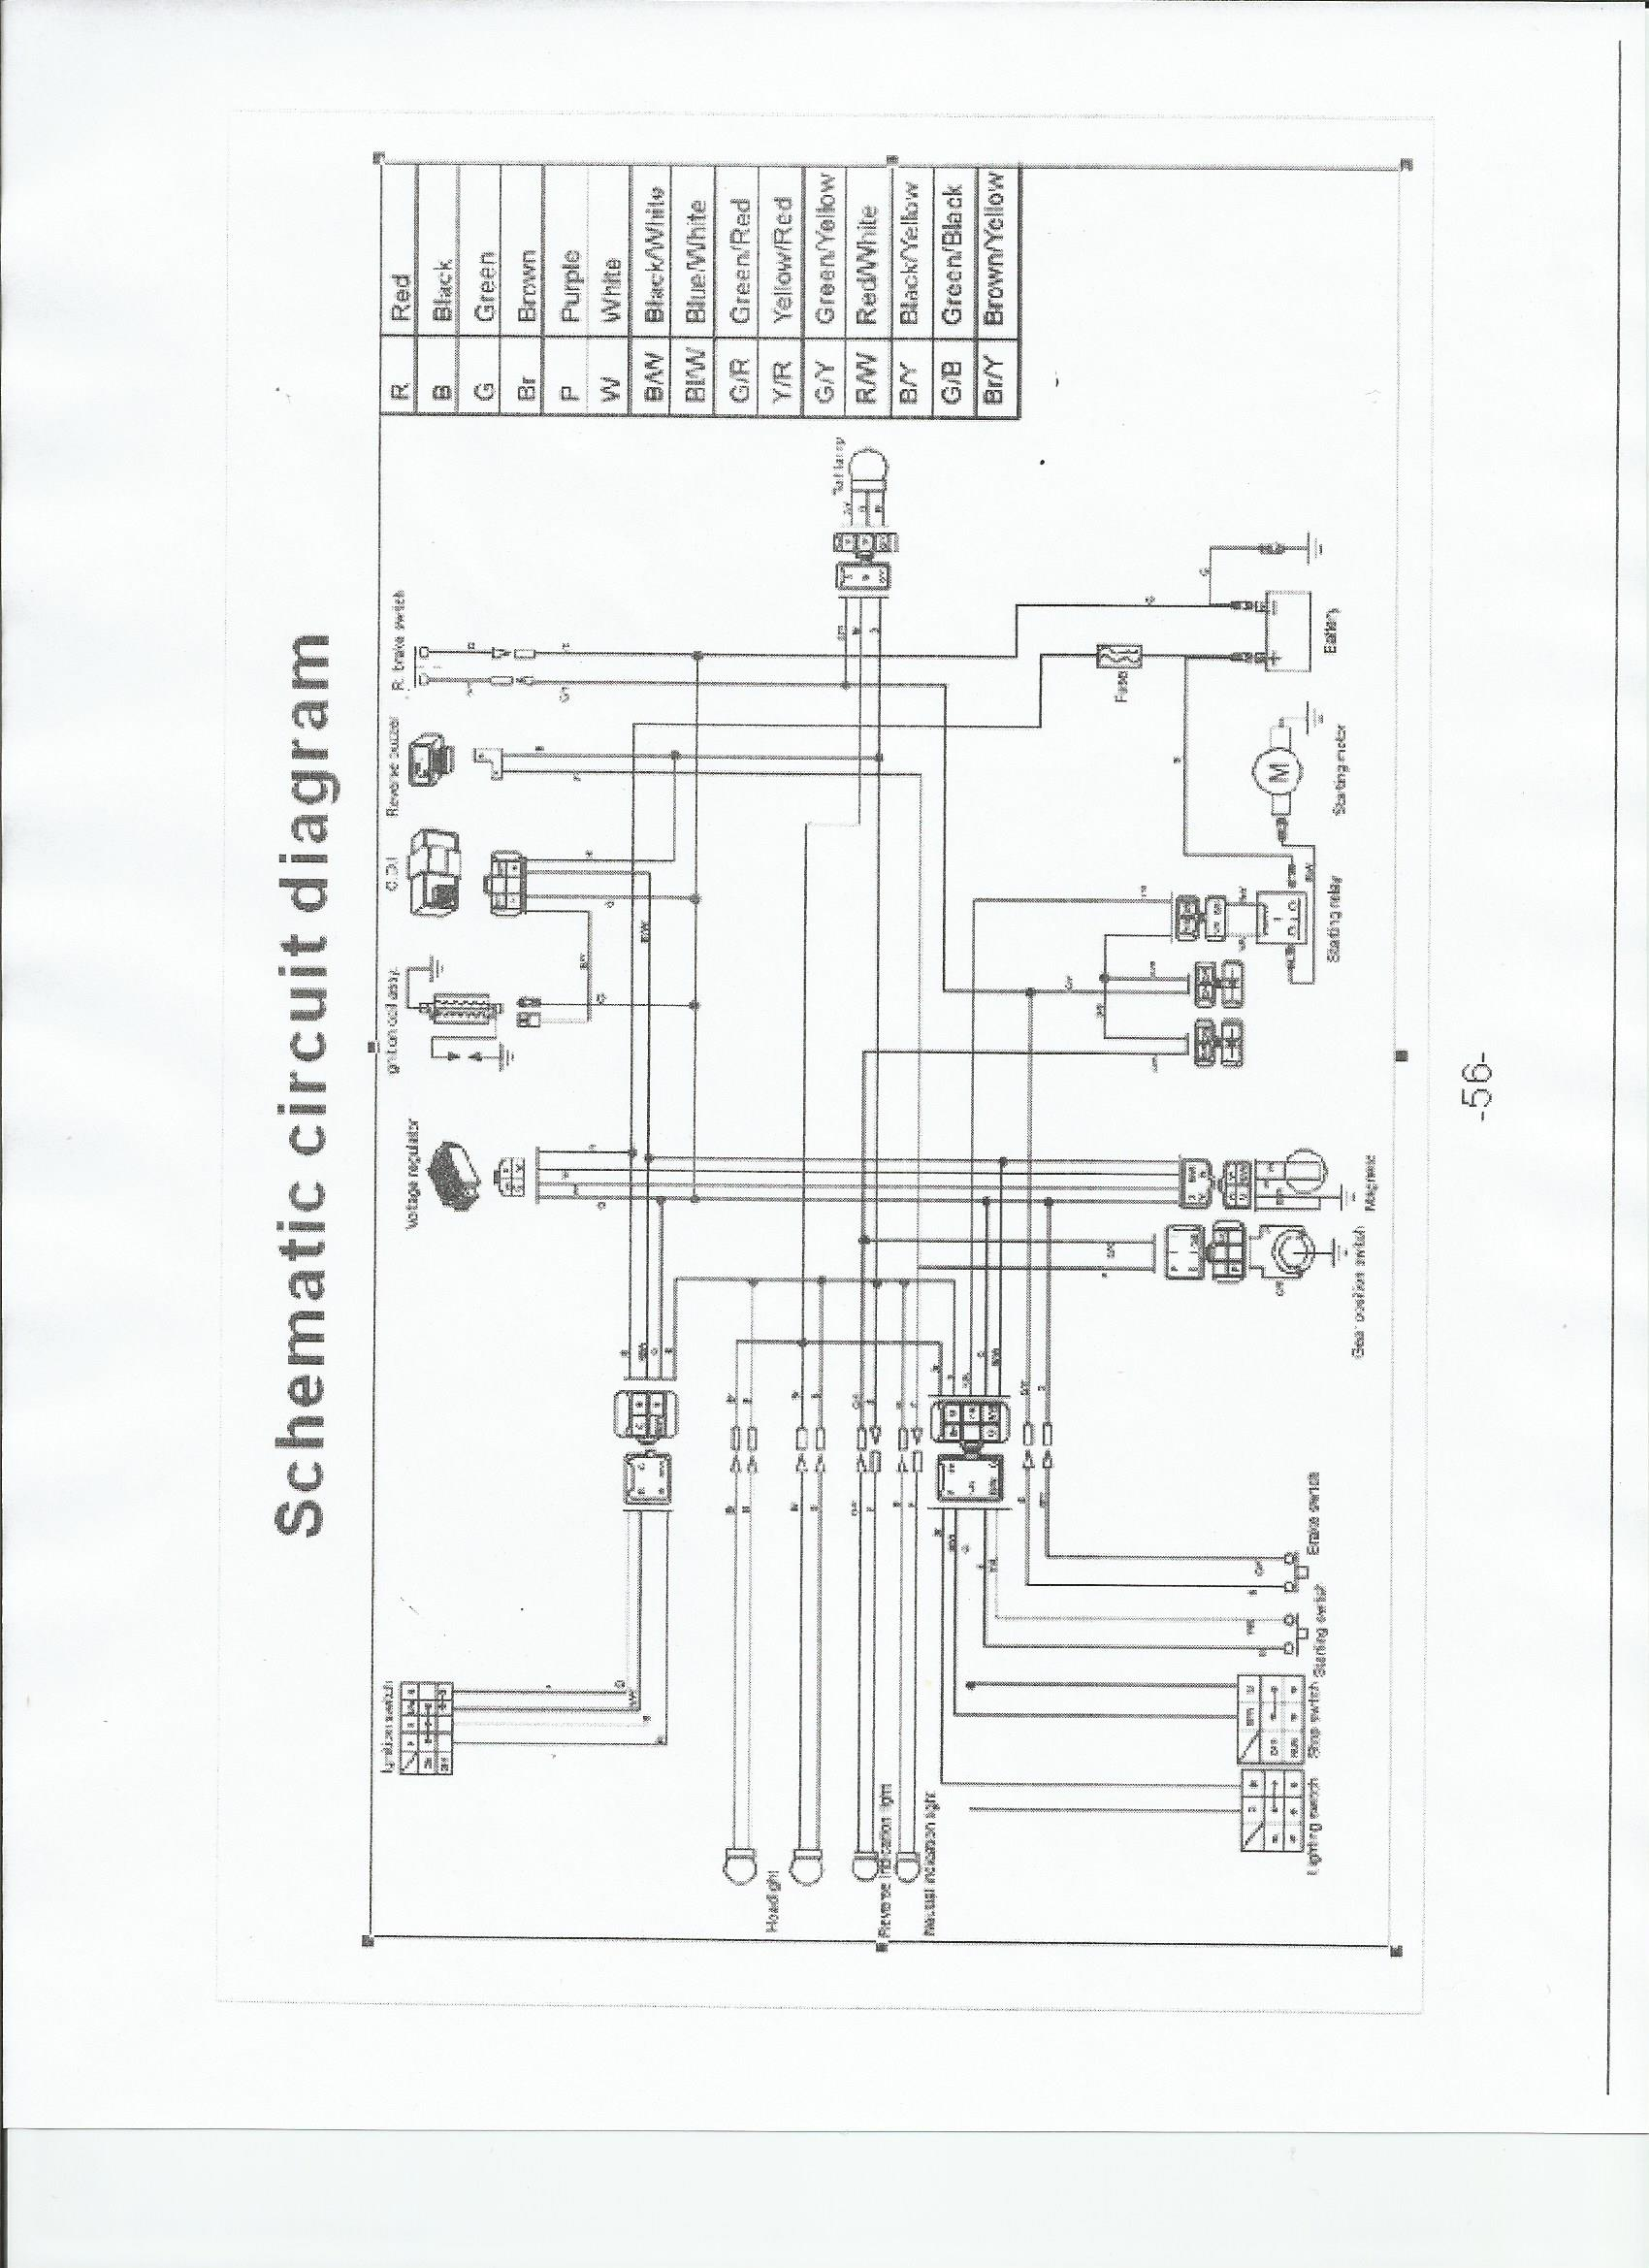 88 Trx250r Wiring Diagram Trusted 300ex 22 Images Diagrams Lighting Efcaviation